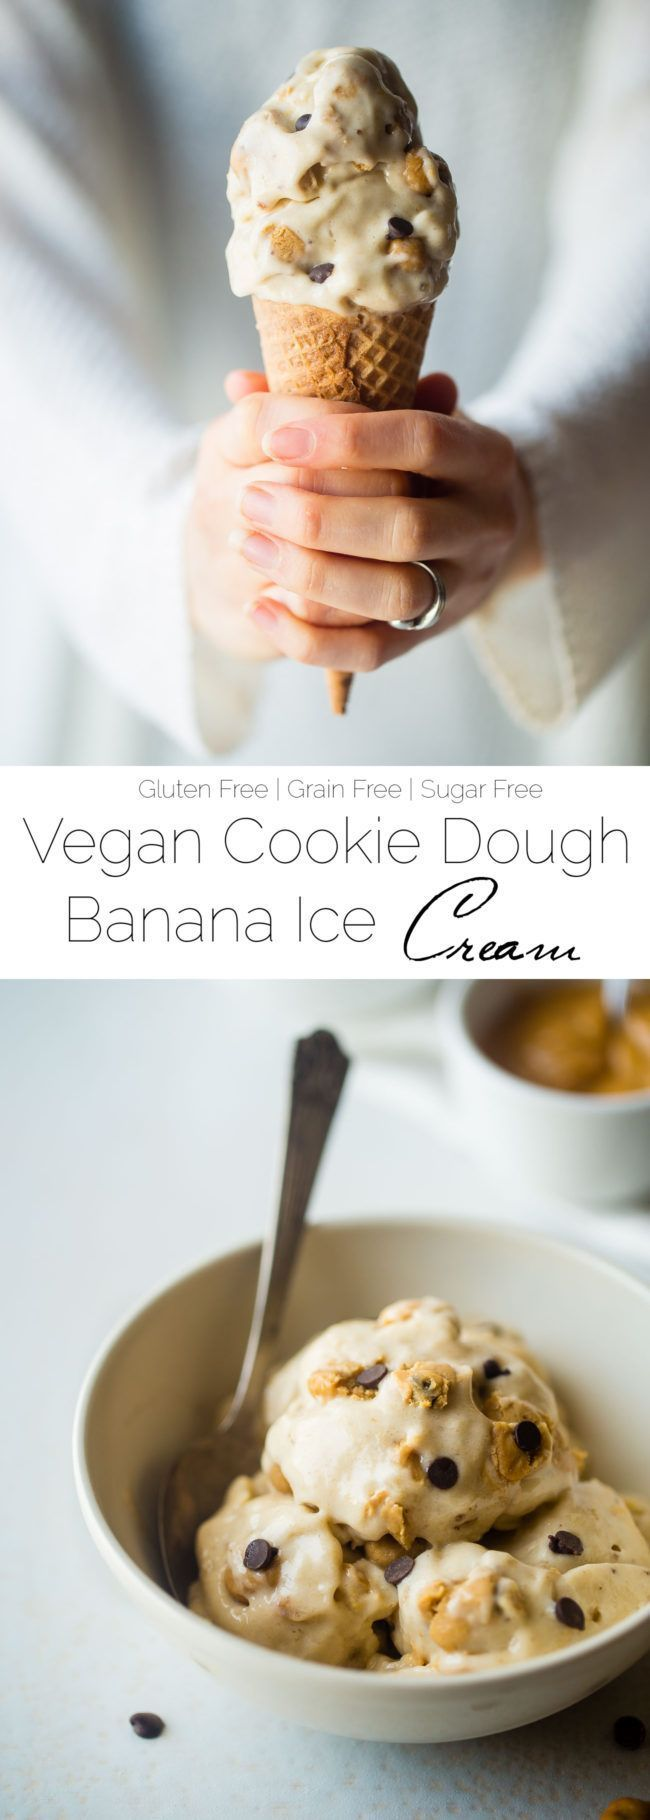 Vegan Cookie Dough Banana Ice Cream - This simple, vegan banana ice cream recipe has chunks of cookie dough! You'll never believe it's a healthy, gluten, dairy, and refined sugar free summer treat! | http://Foodfaithfitness.com | /FoodFaithFit/